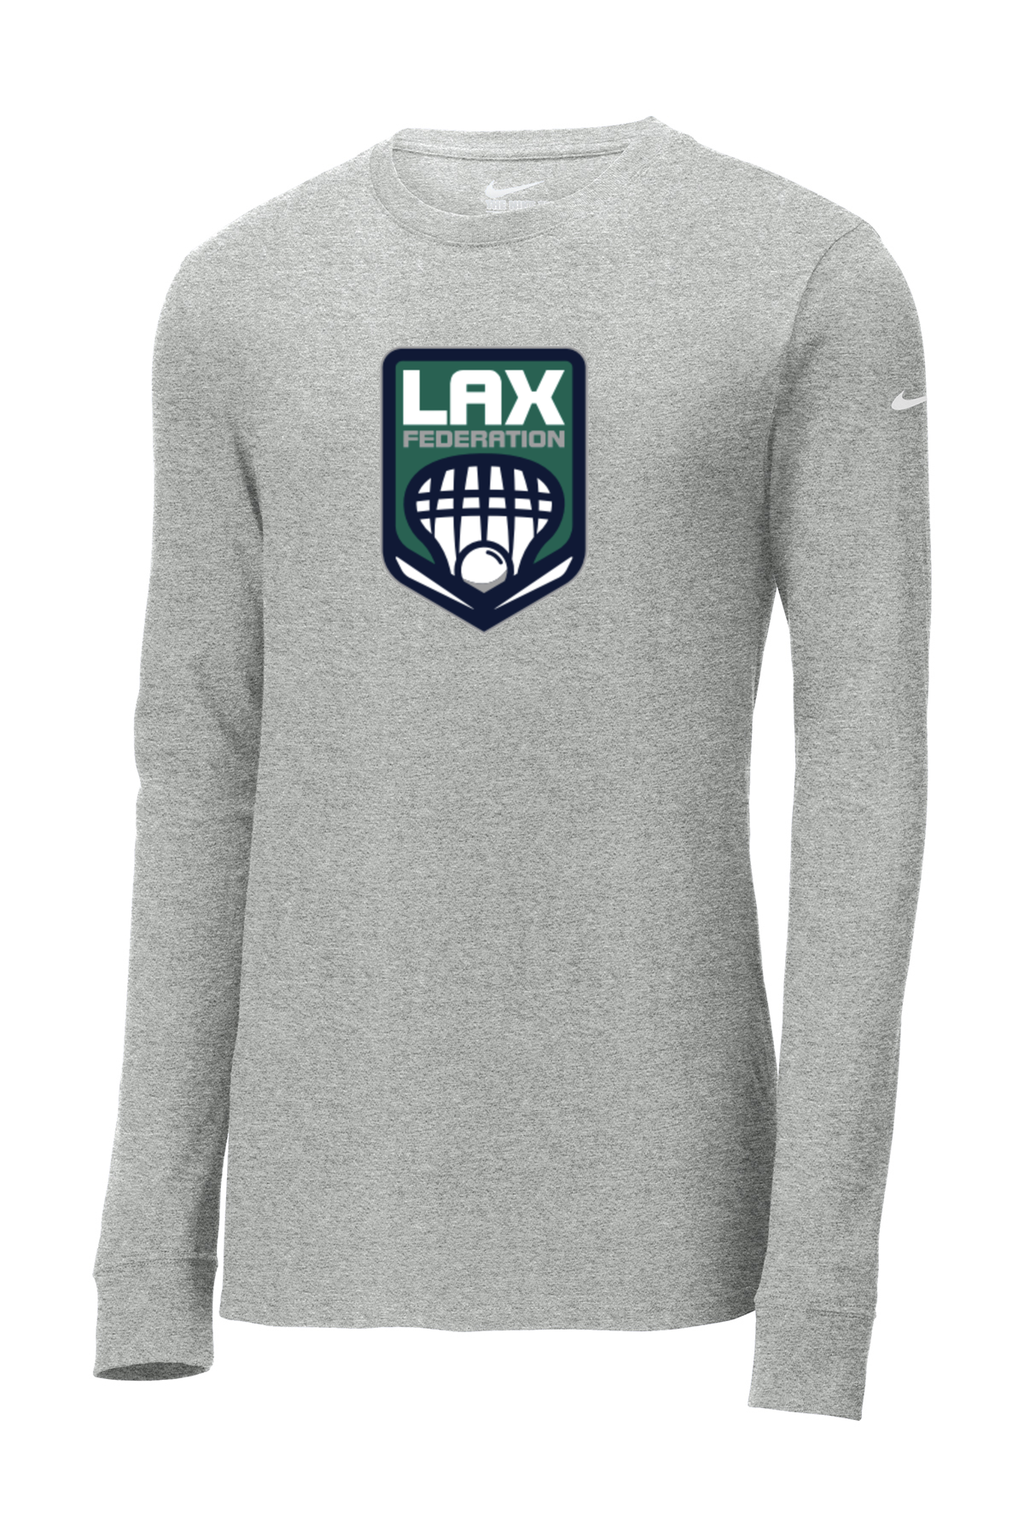 LAX FED Nike Core Cotton Long Sleeve Tee